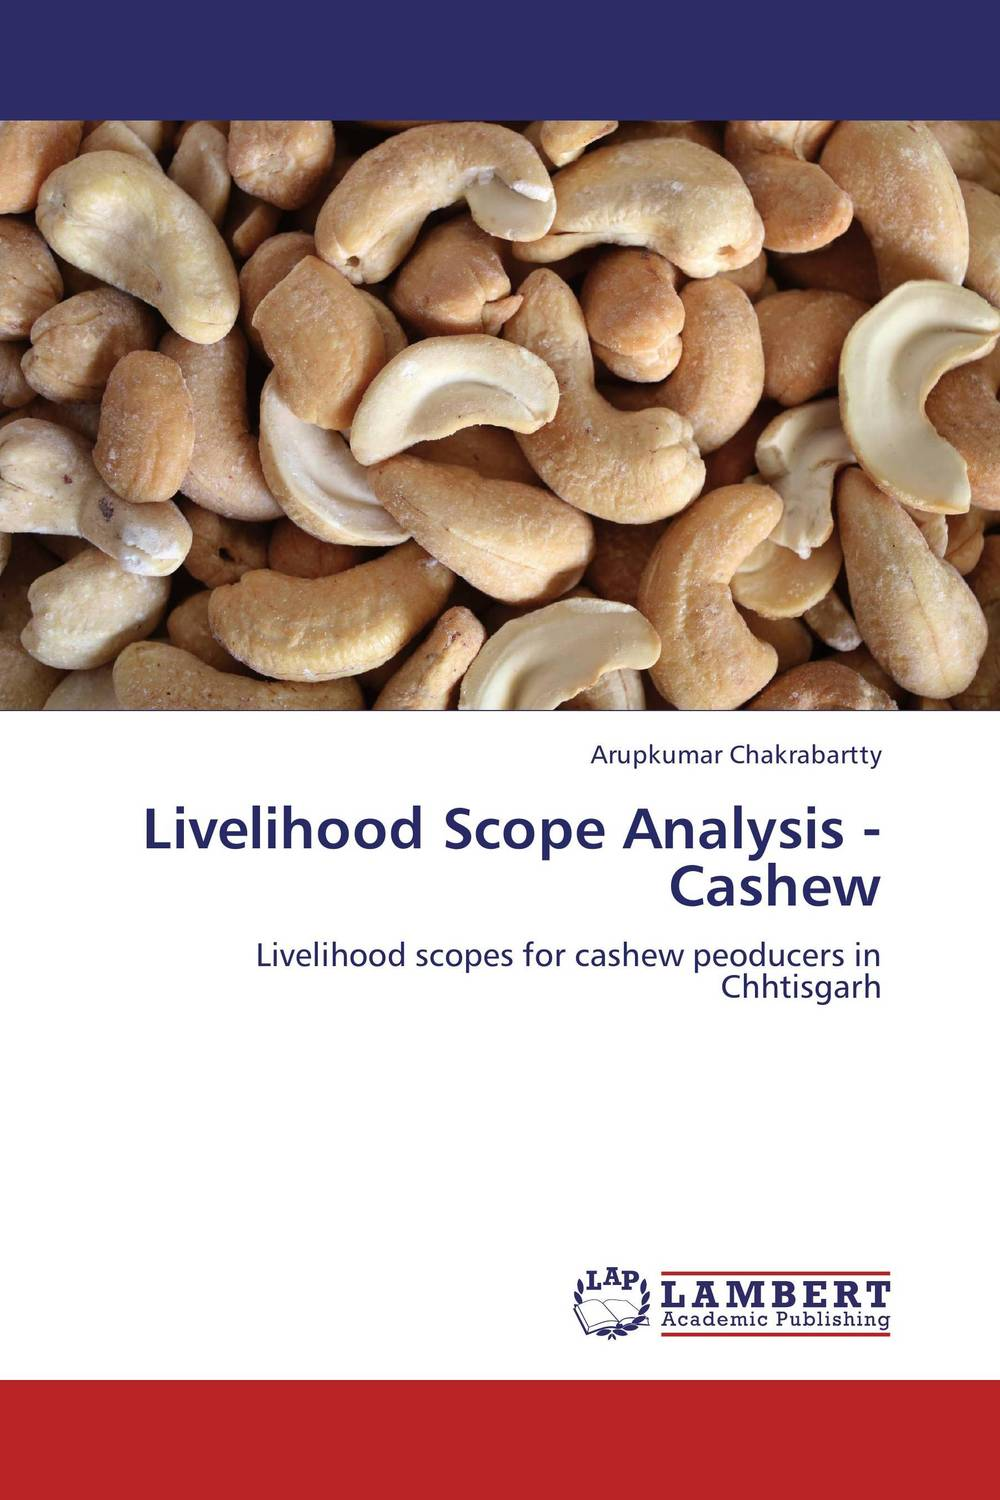 Livelihood Scope Analysis - Cashew the production status and roles of 'enset' for livelihood security